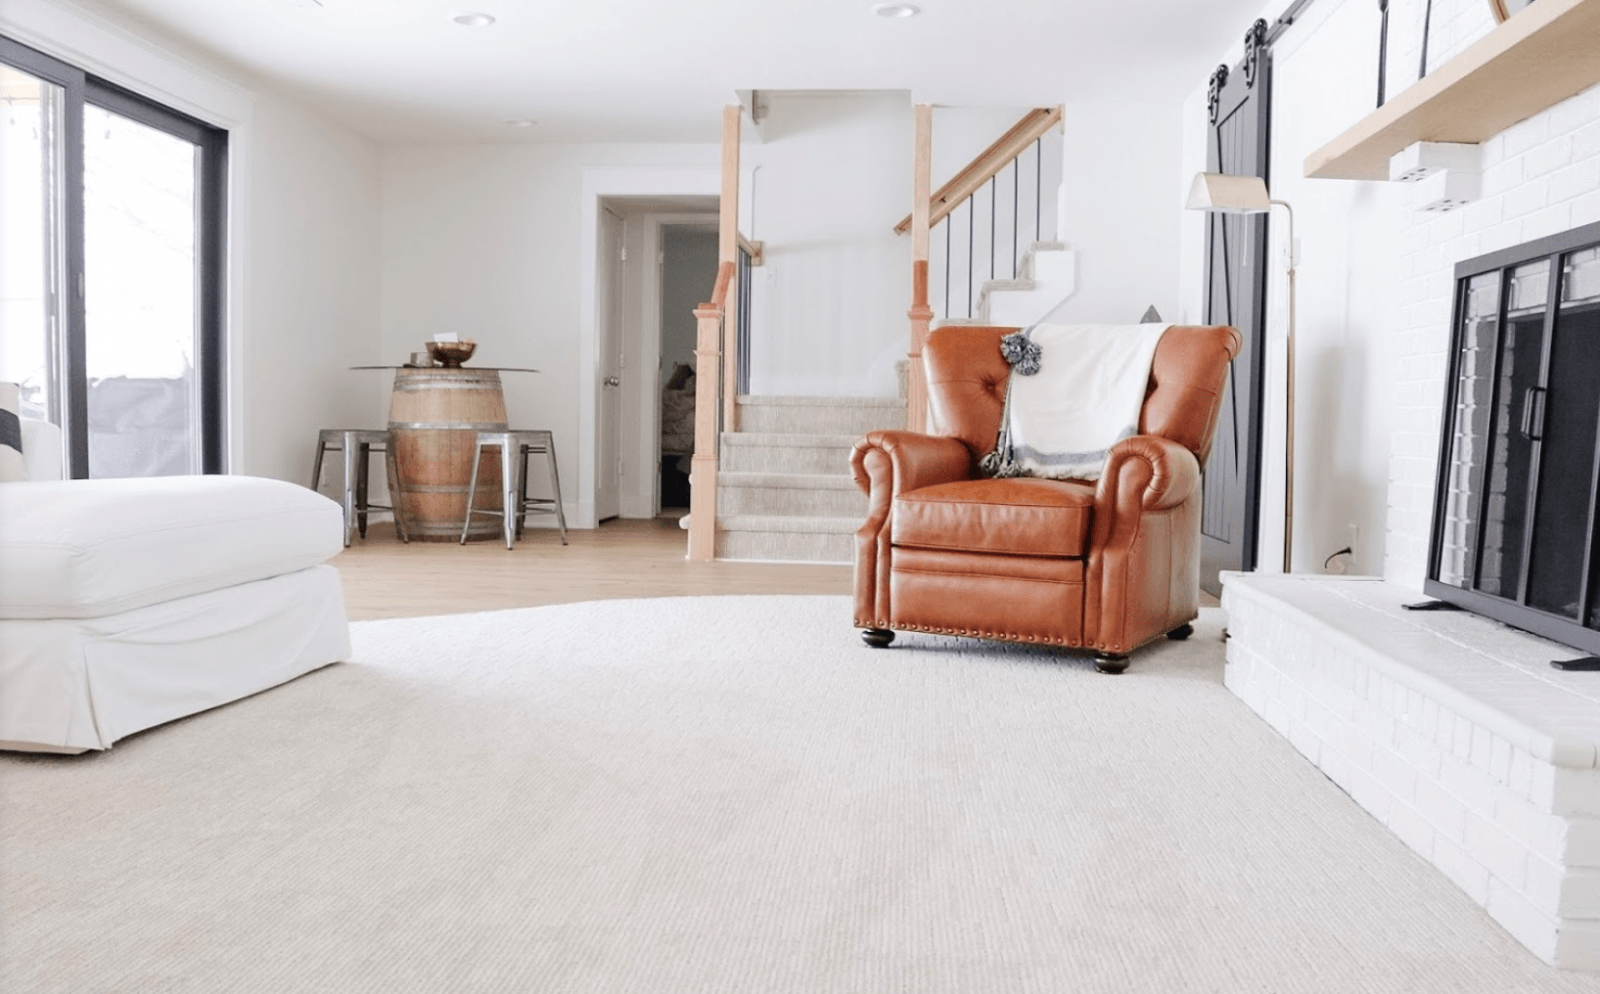 Carpet for your room | West River Carpets